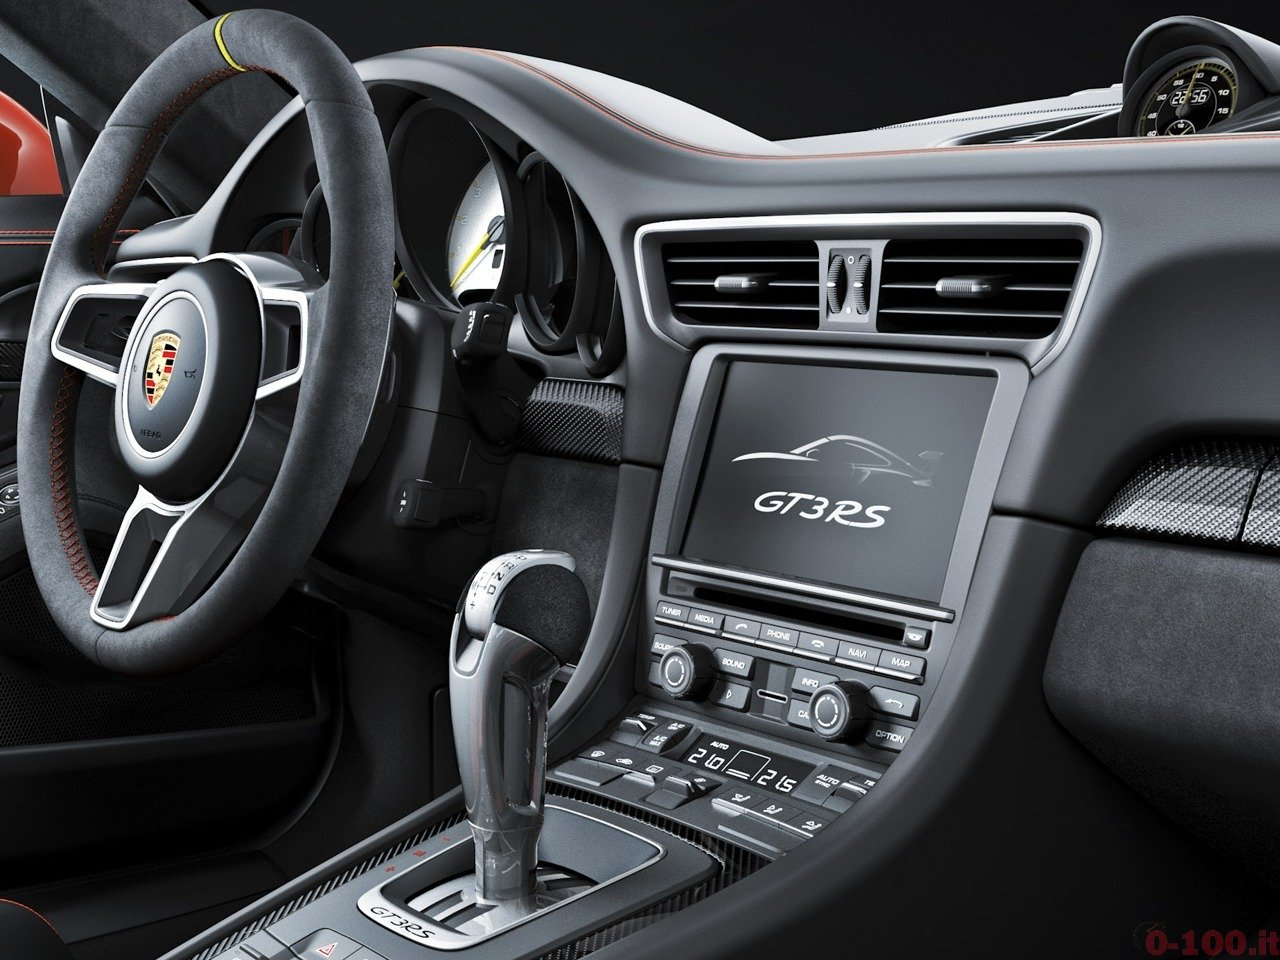 Interieur 911 GT3 RS